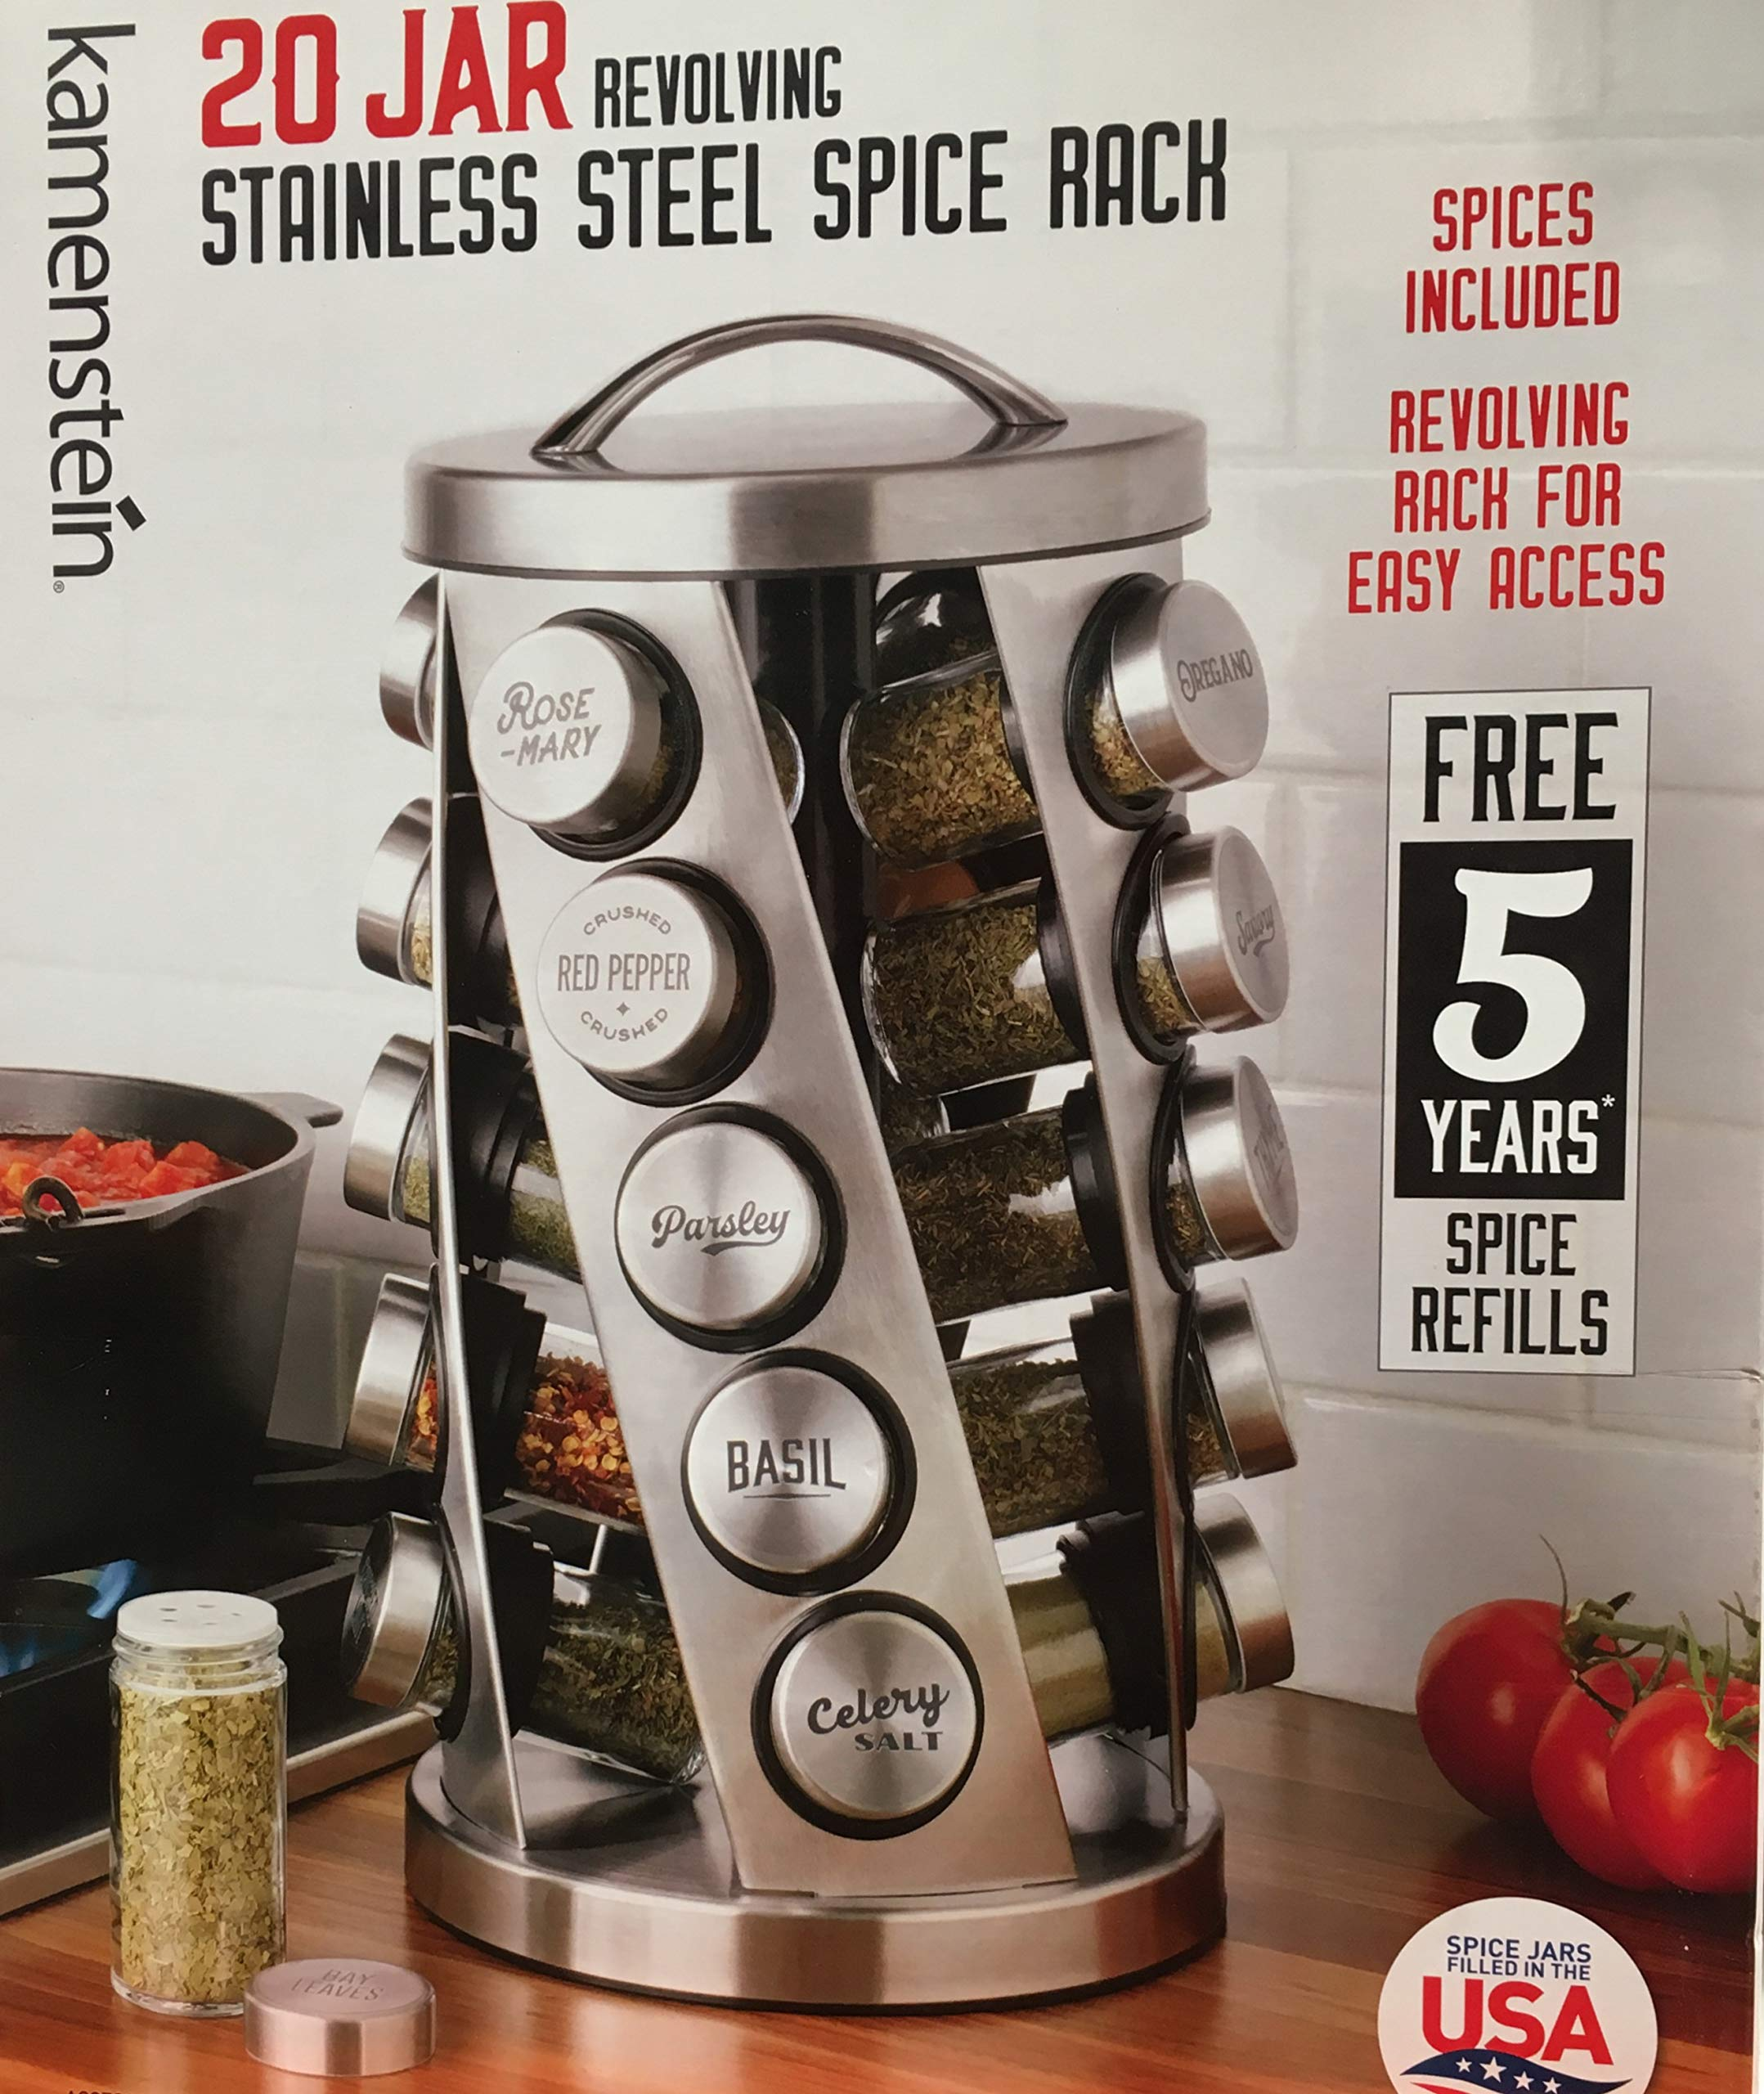 Contemporary Spice Rack Stainless Steel 20 Jars Revolving Rack for Easy Access,Spices Included Plus Free 5 Years of Refills, Filled in USA by Kamenstien